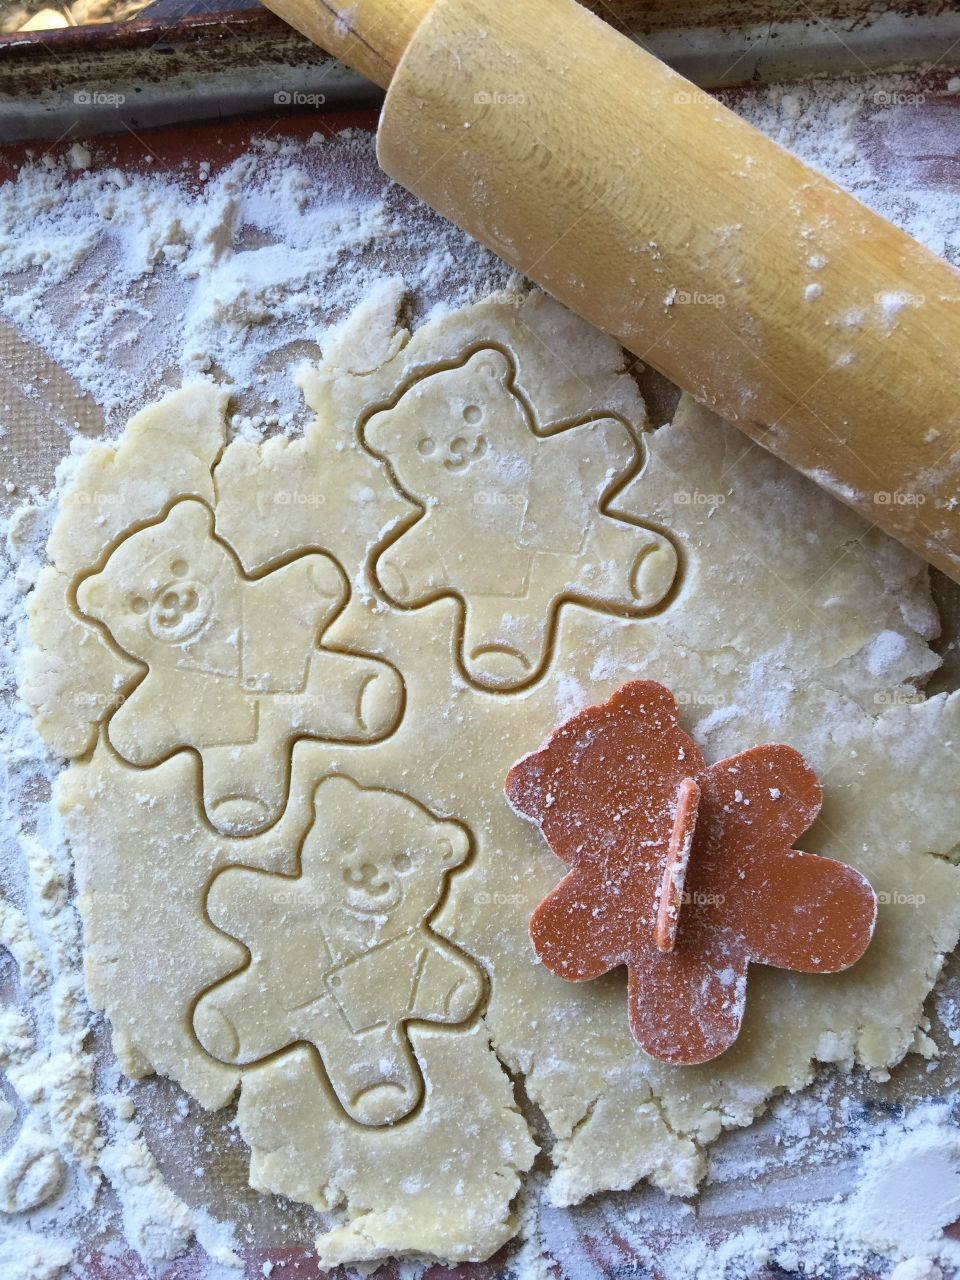 Cutting out teddy bear cookies